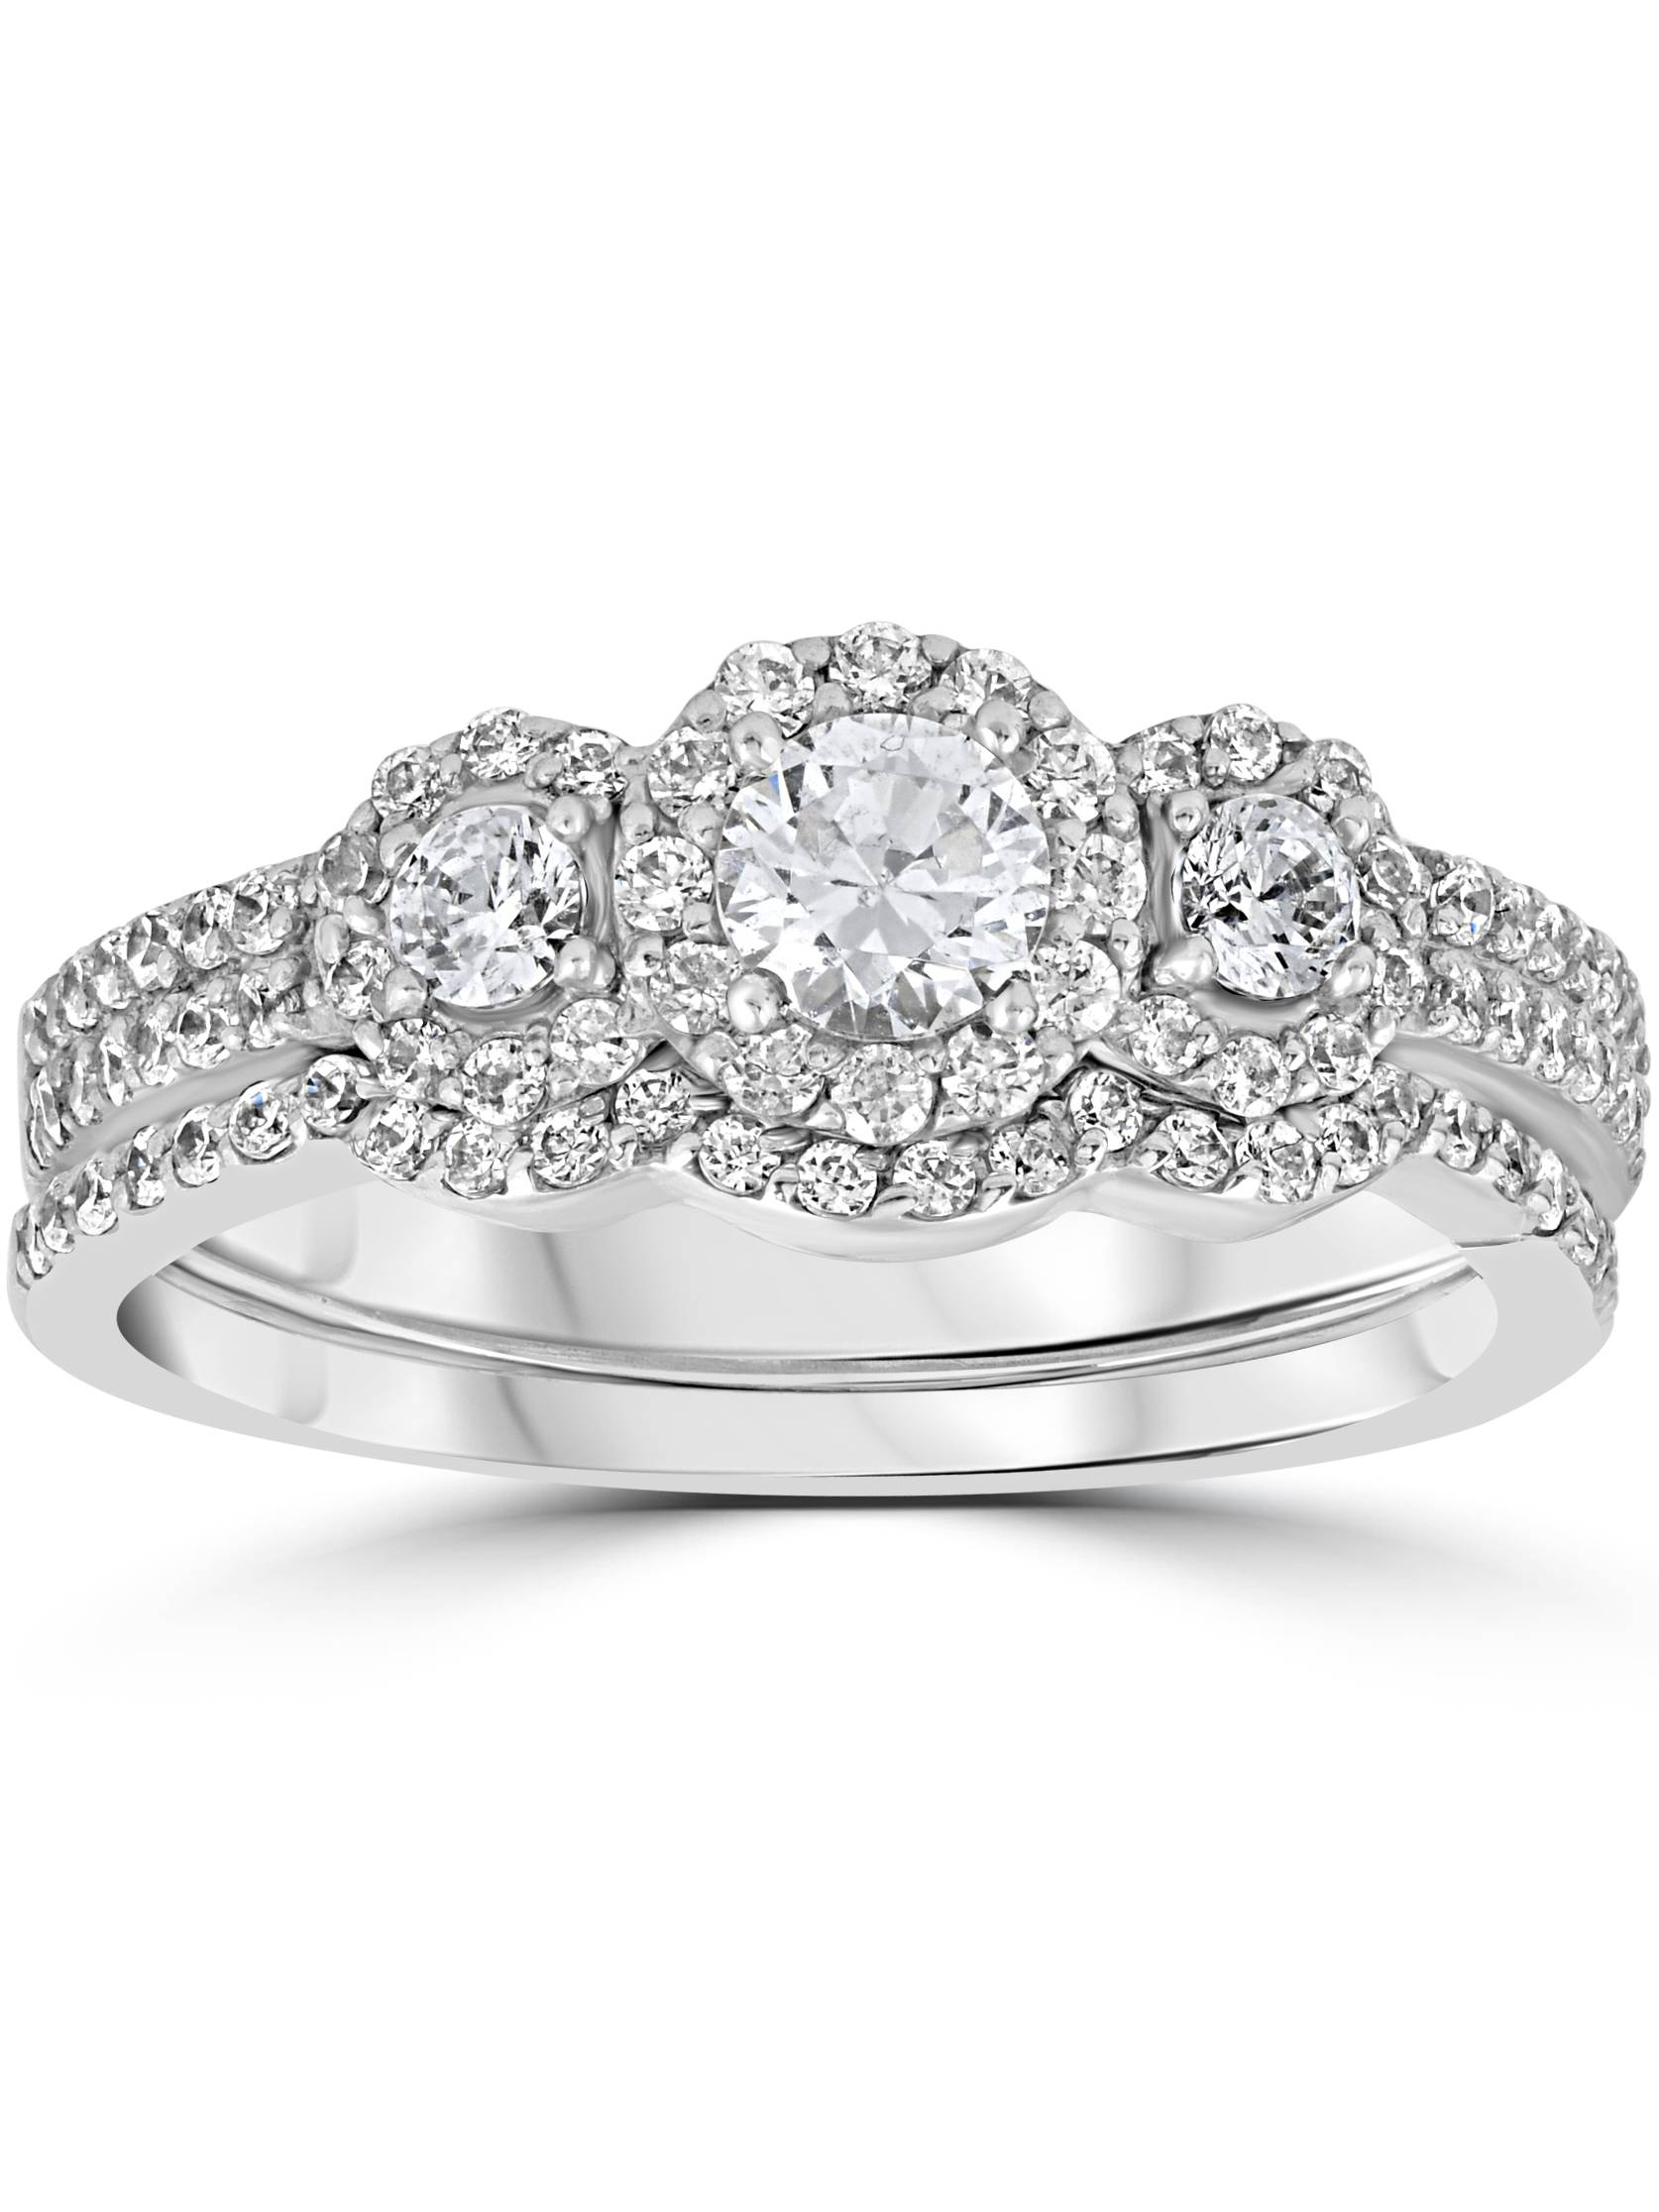 1.00Ct 3 Stone Diamond Engagement Wedding Ring Set 10K White Gold by Pompeii3